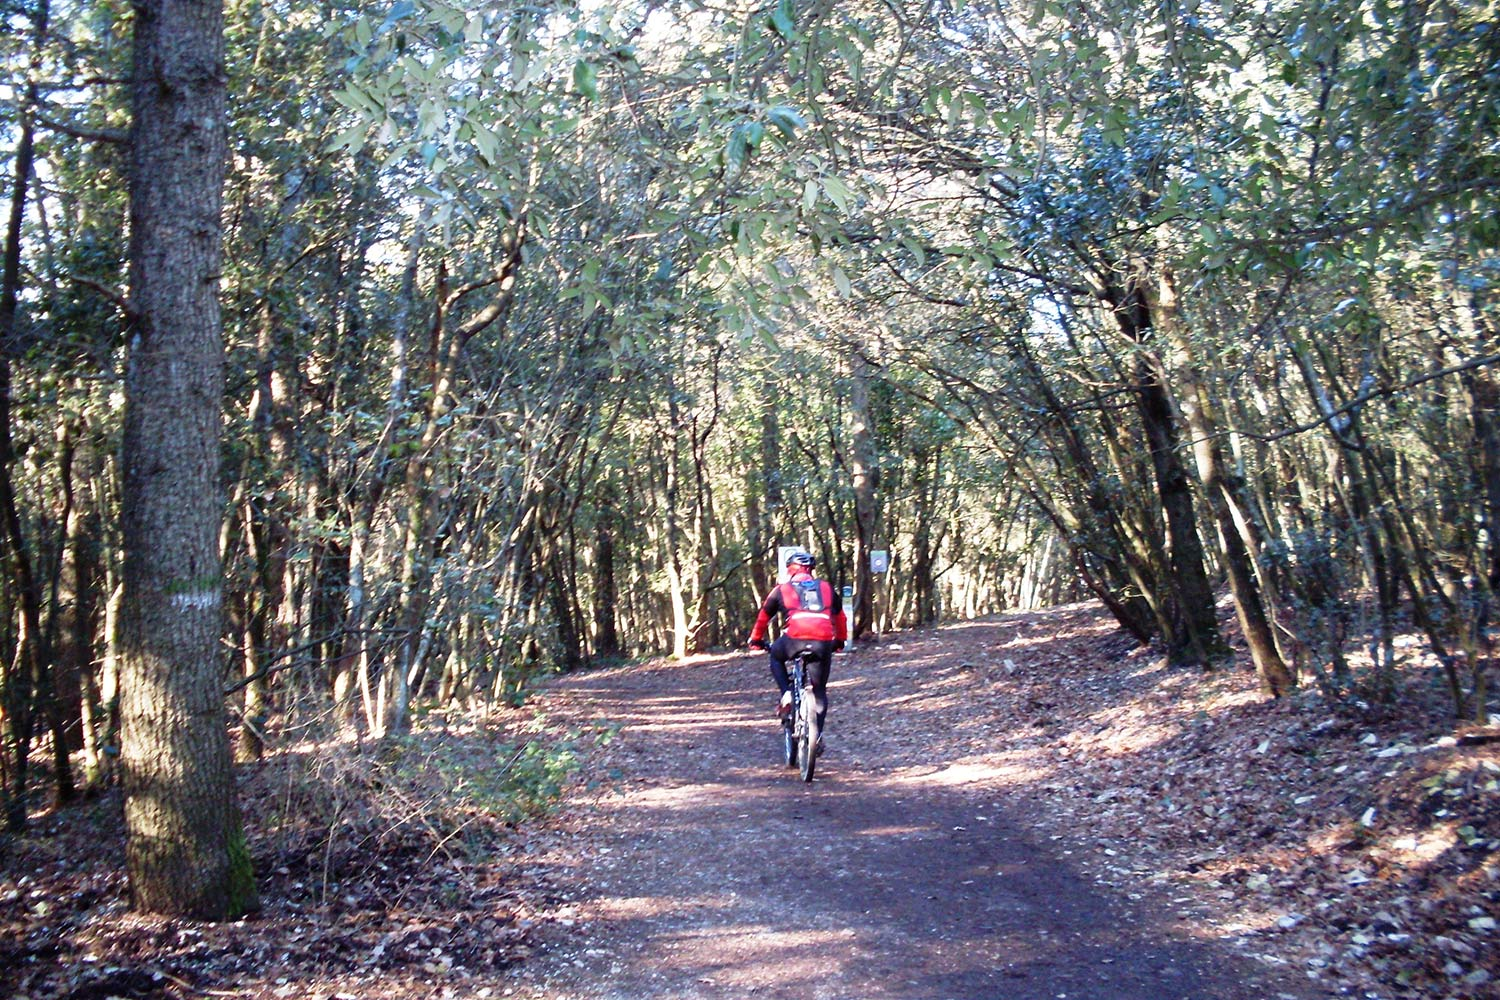 Mountain bike on Monte cOnero